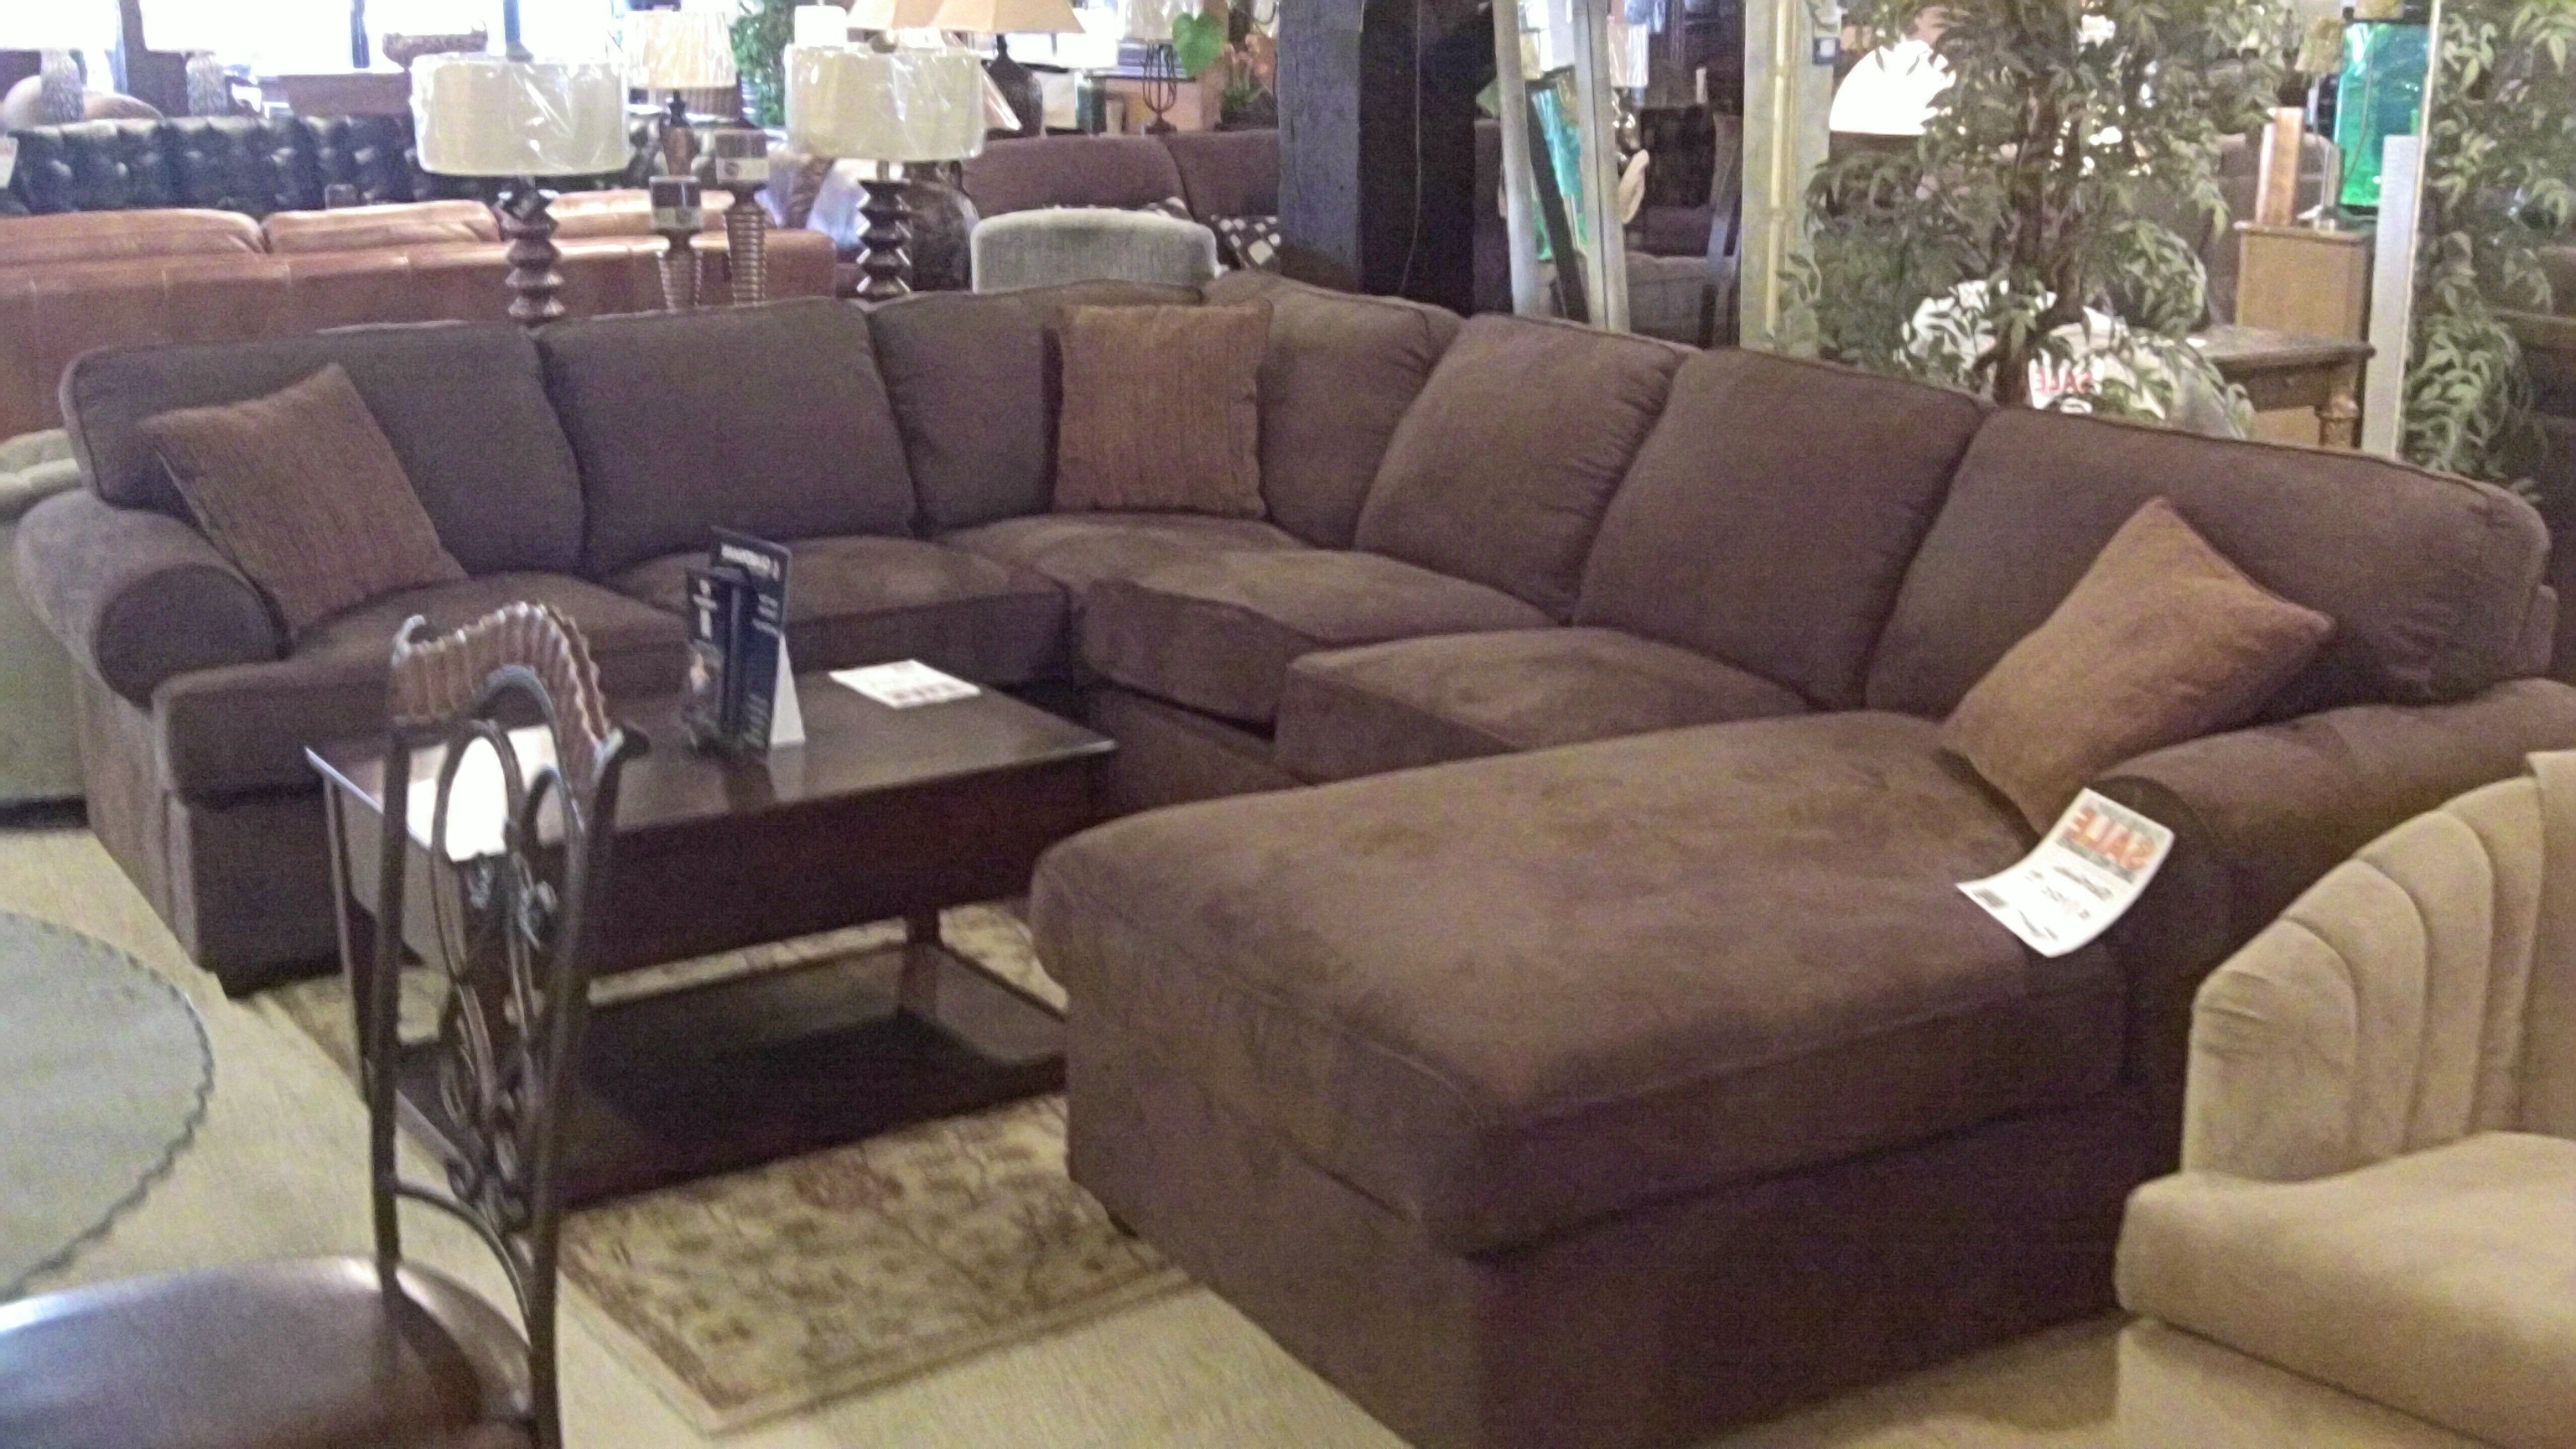 Sectional Couches With Large Ottoman Throughout 2018 Home Design : Cool Best Modern Fabric Sectional Sofas With Chaise (View 16 of 20)